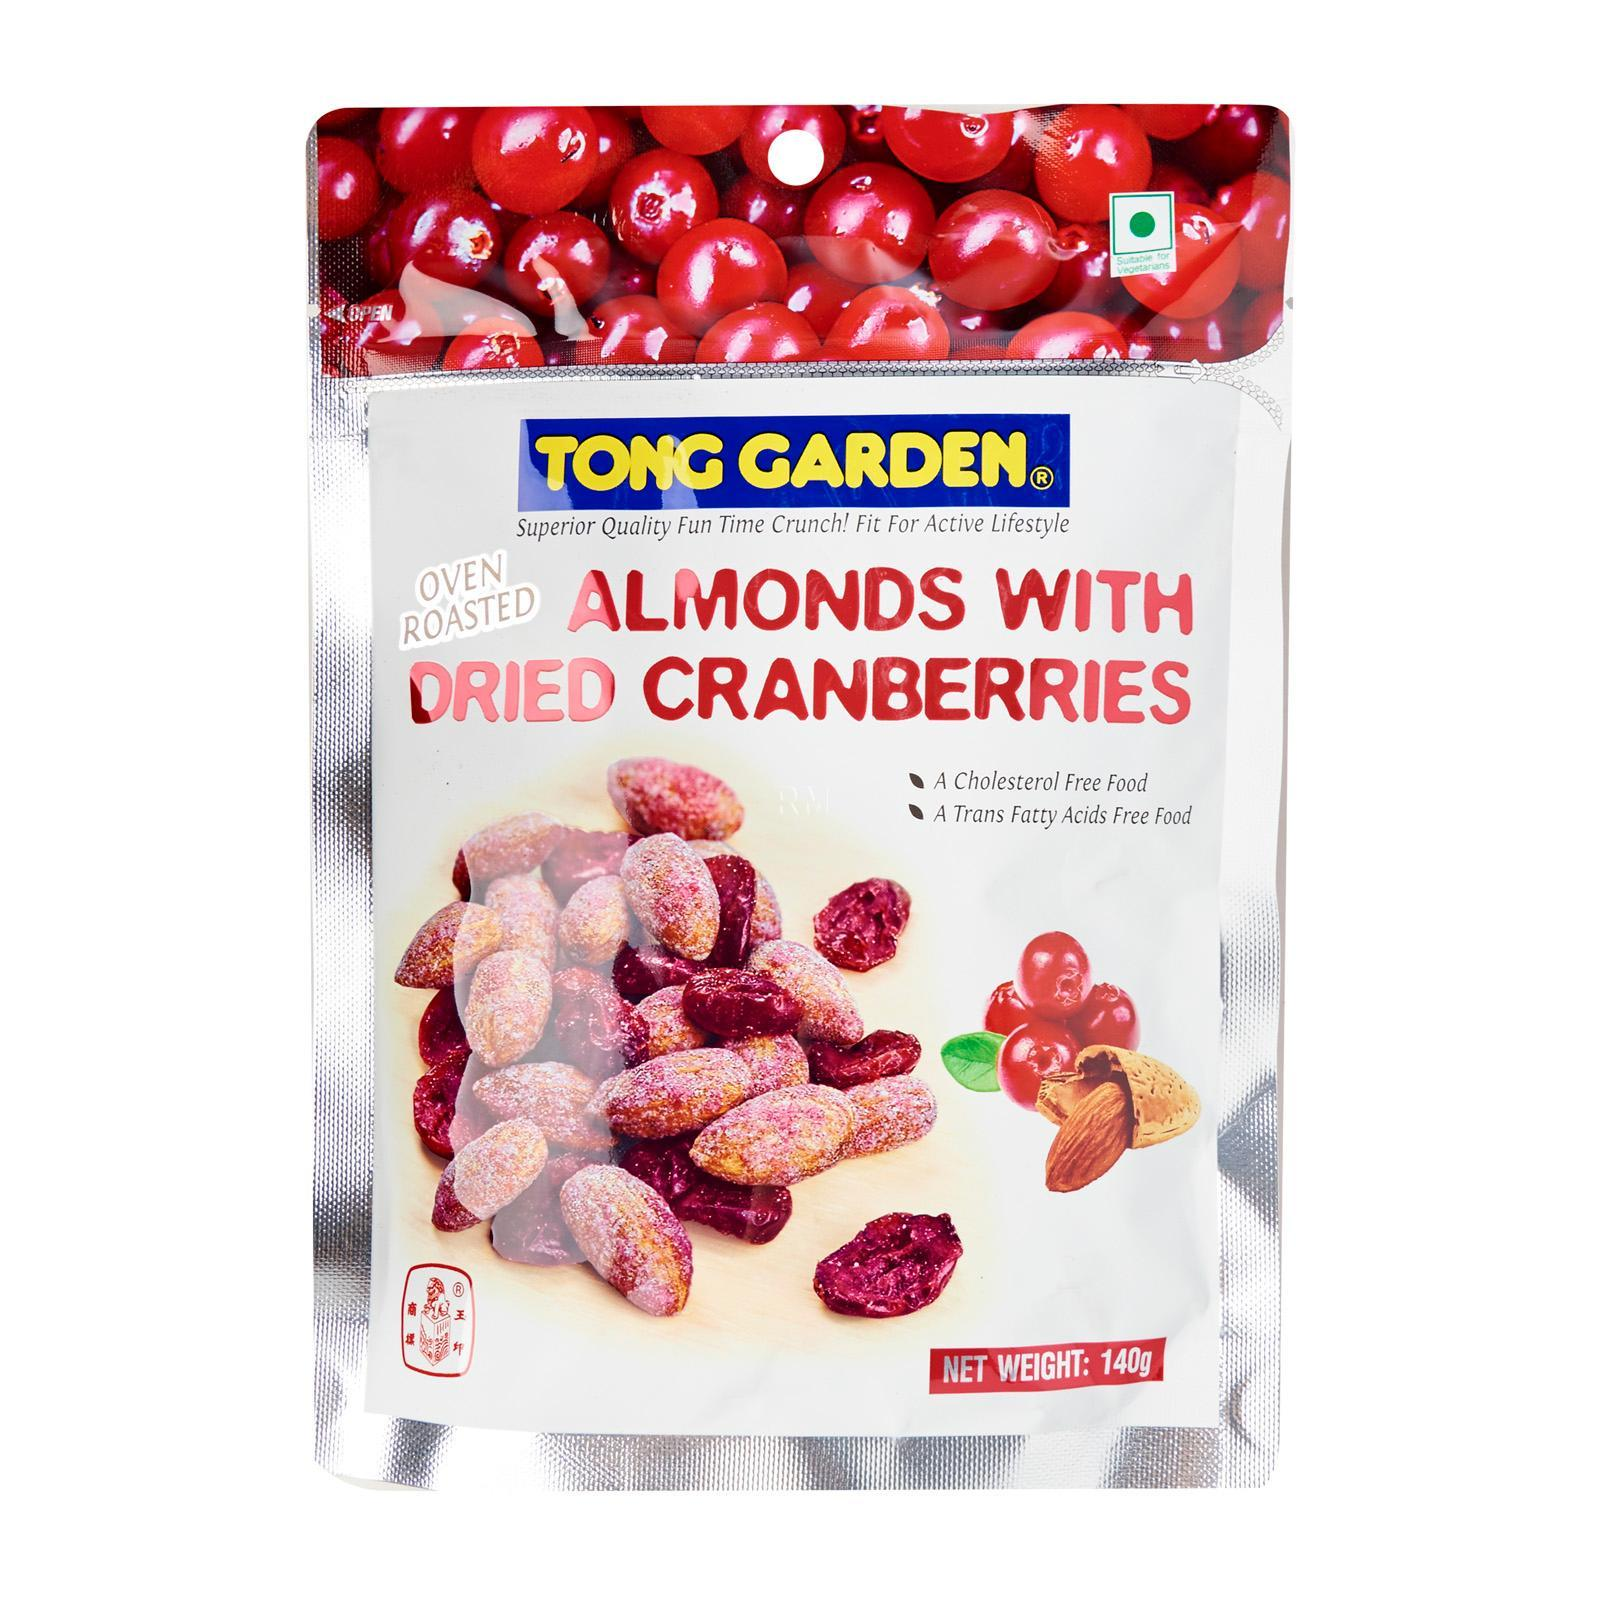 TONG GARDEN Almond With Dried Cranberries 140g